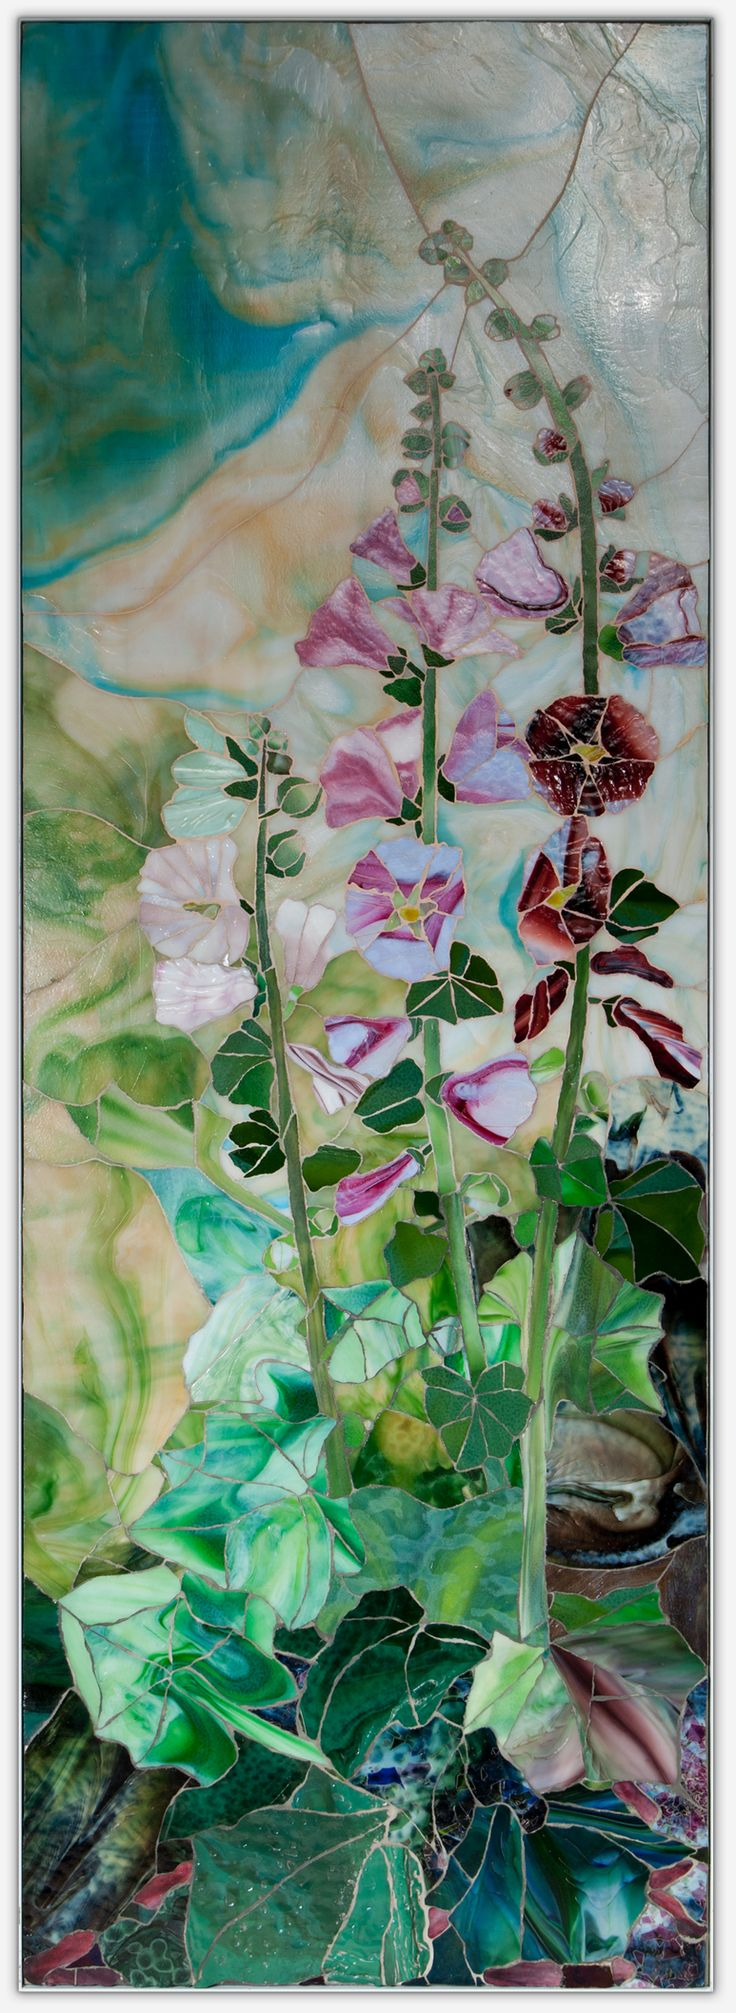 Glass Mosaic: Hollyhocks, 170cm by 61cm - by Rose Scherpenzeel                                                                                                                                                      More